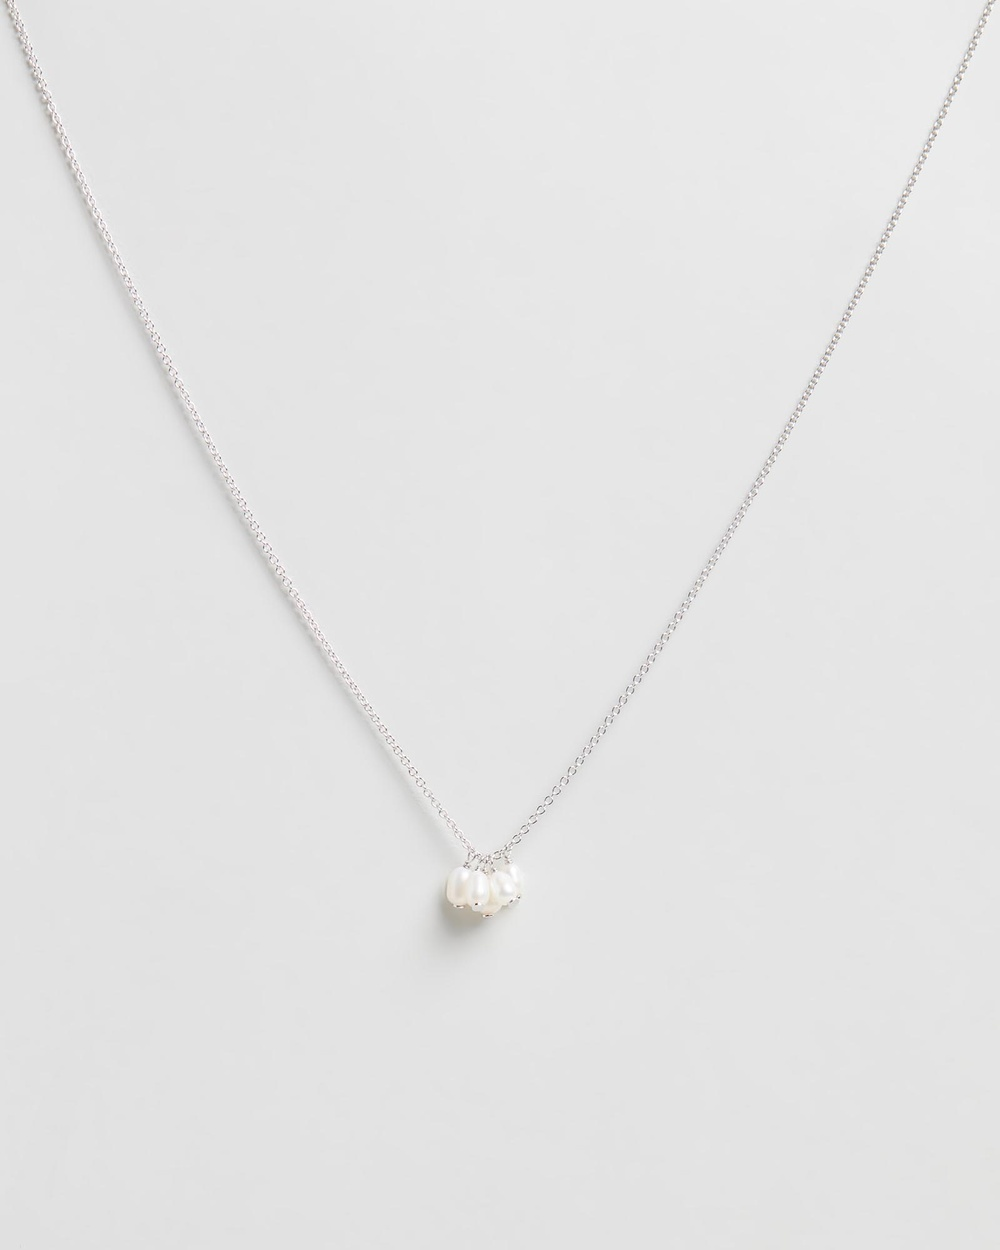 Bianc Harbour Necklace Jewellery Rhodium-Plated Sterling Silver